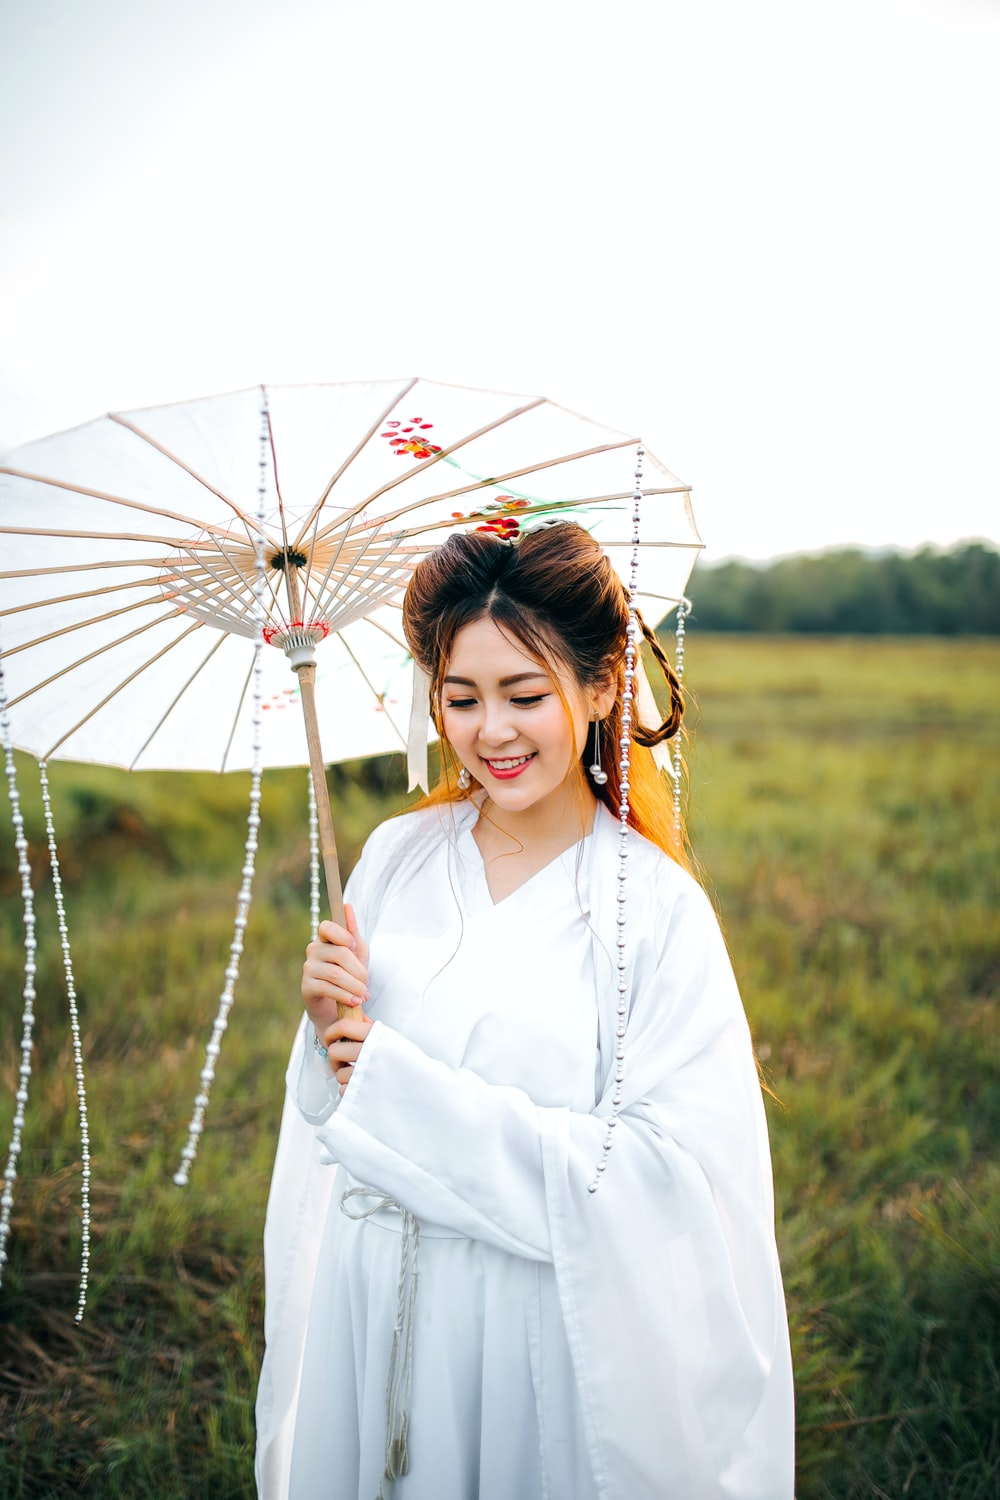 woman wearing white kimono dress and holding white umbrella